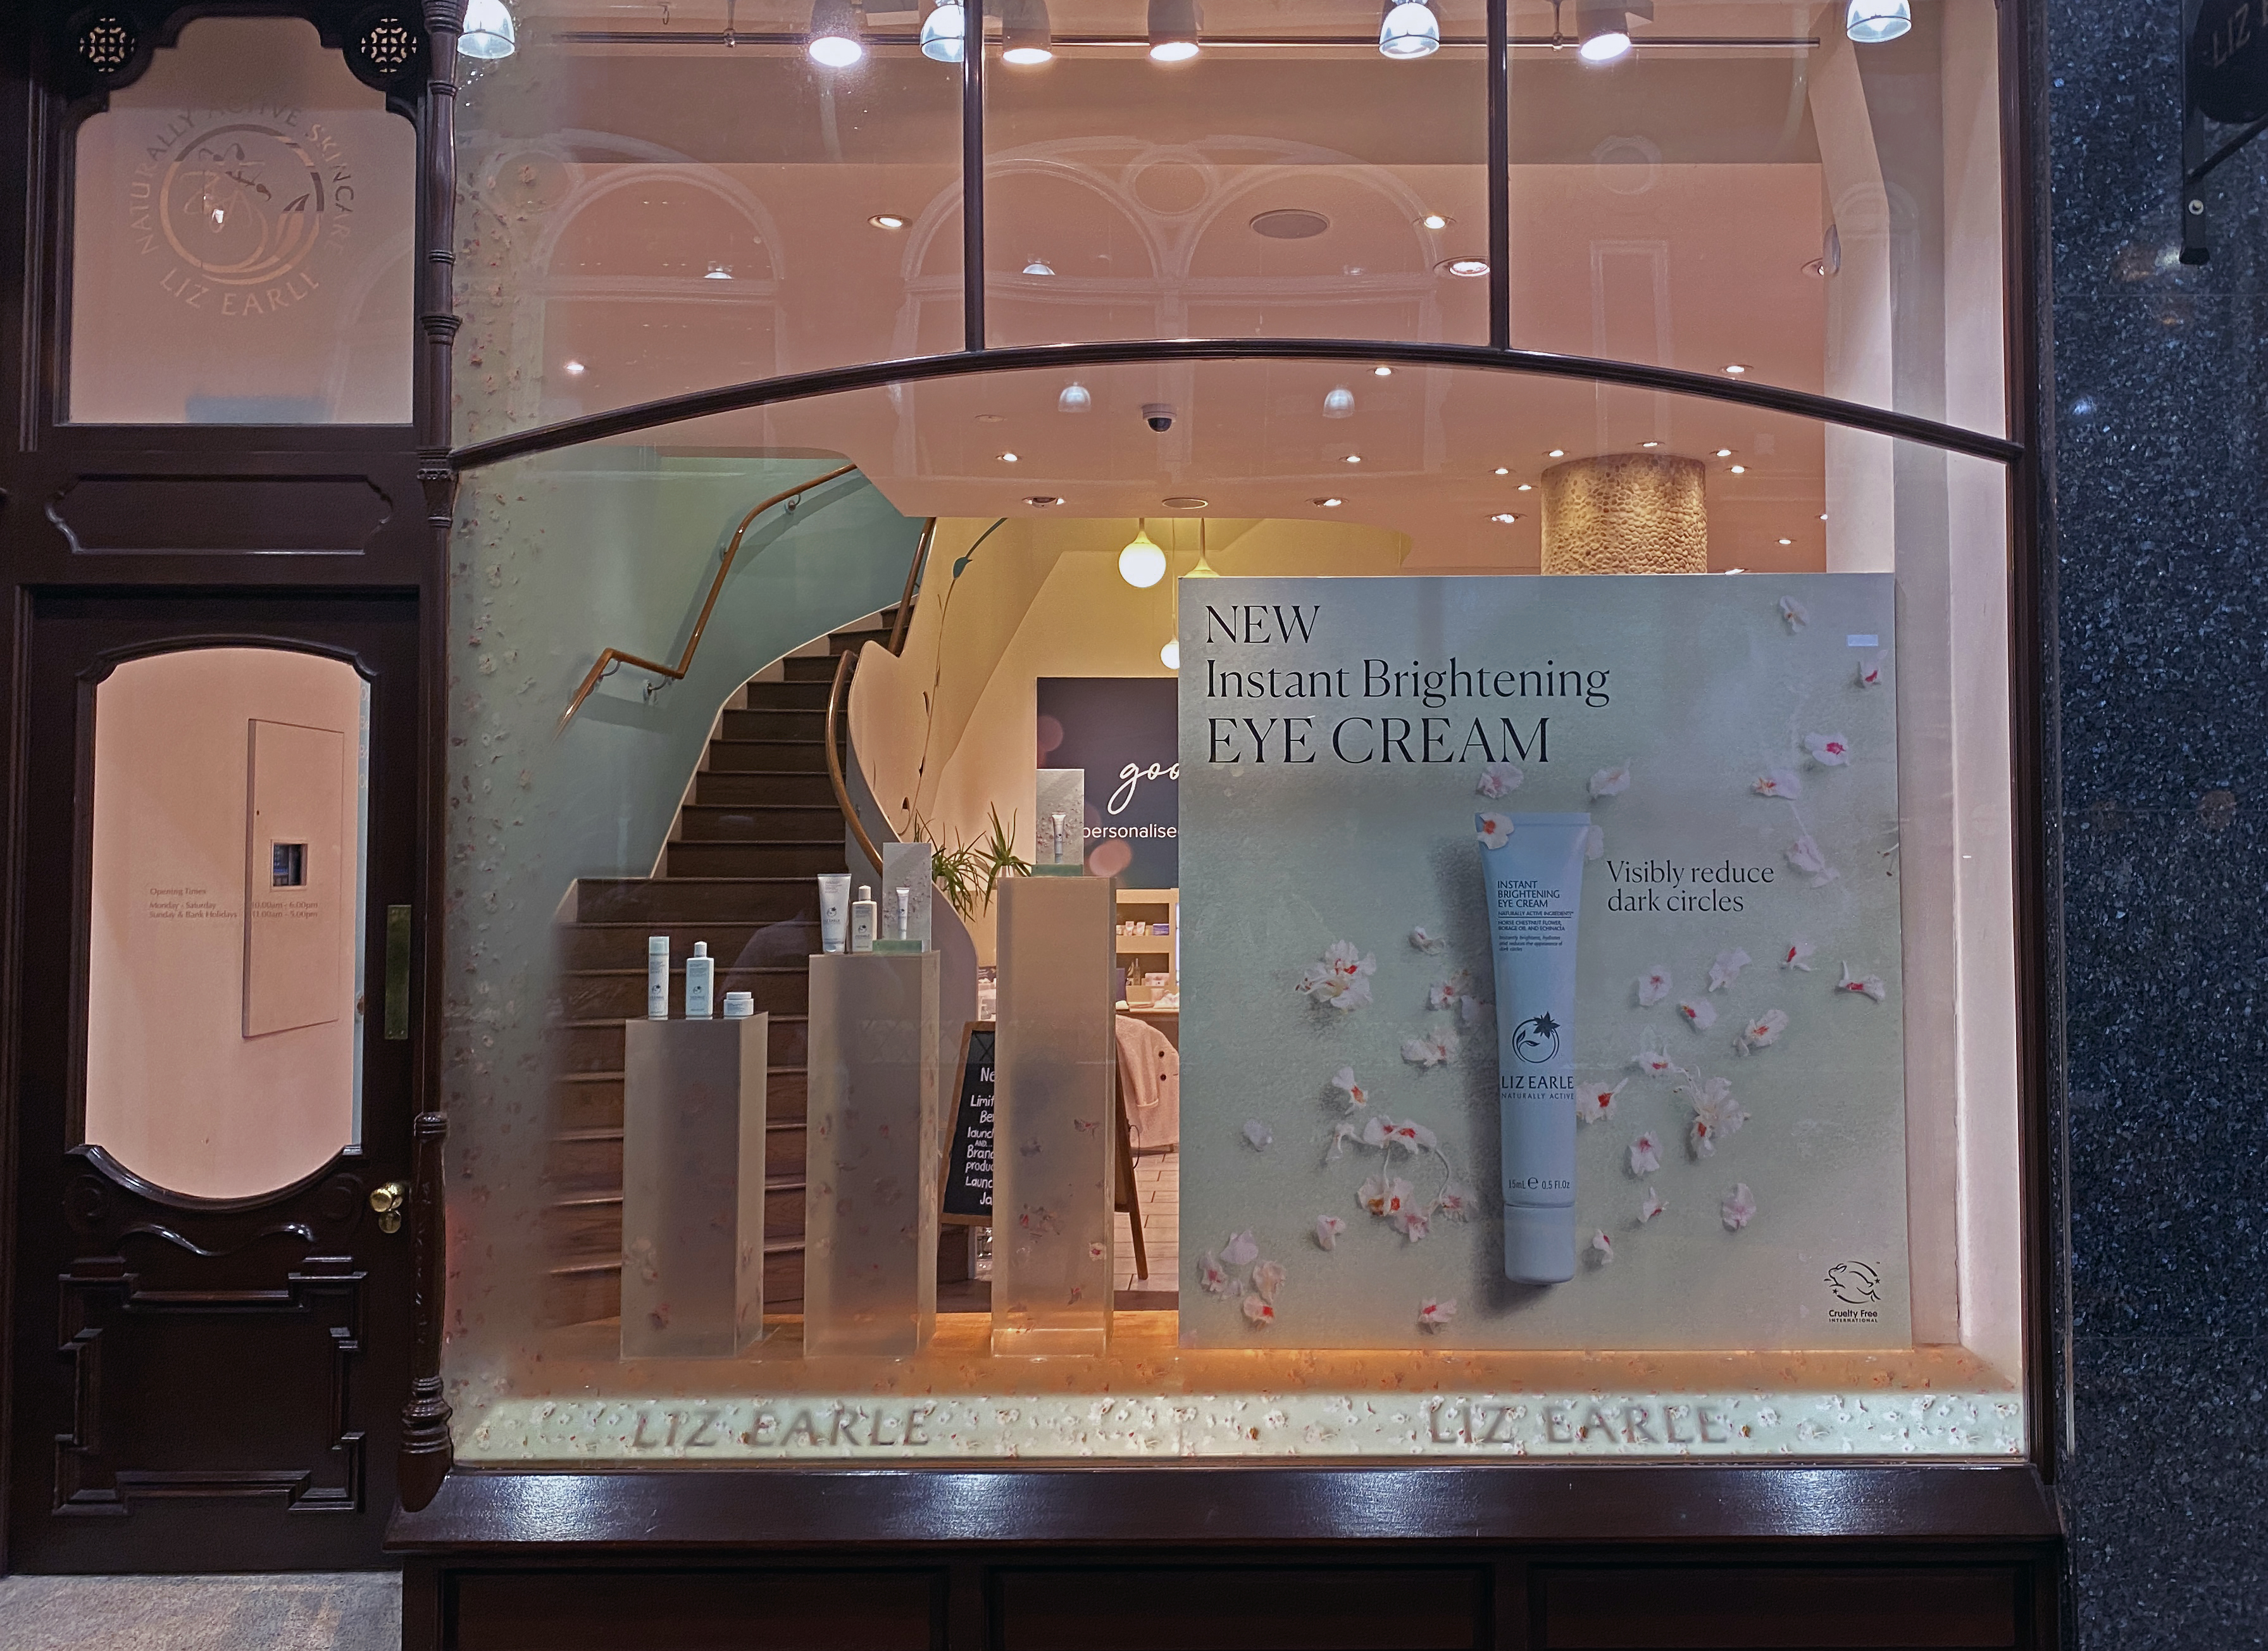 Liz Earle window display signage and stands